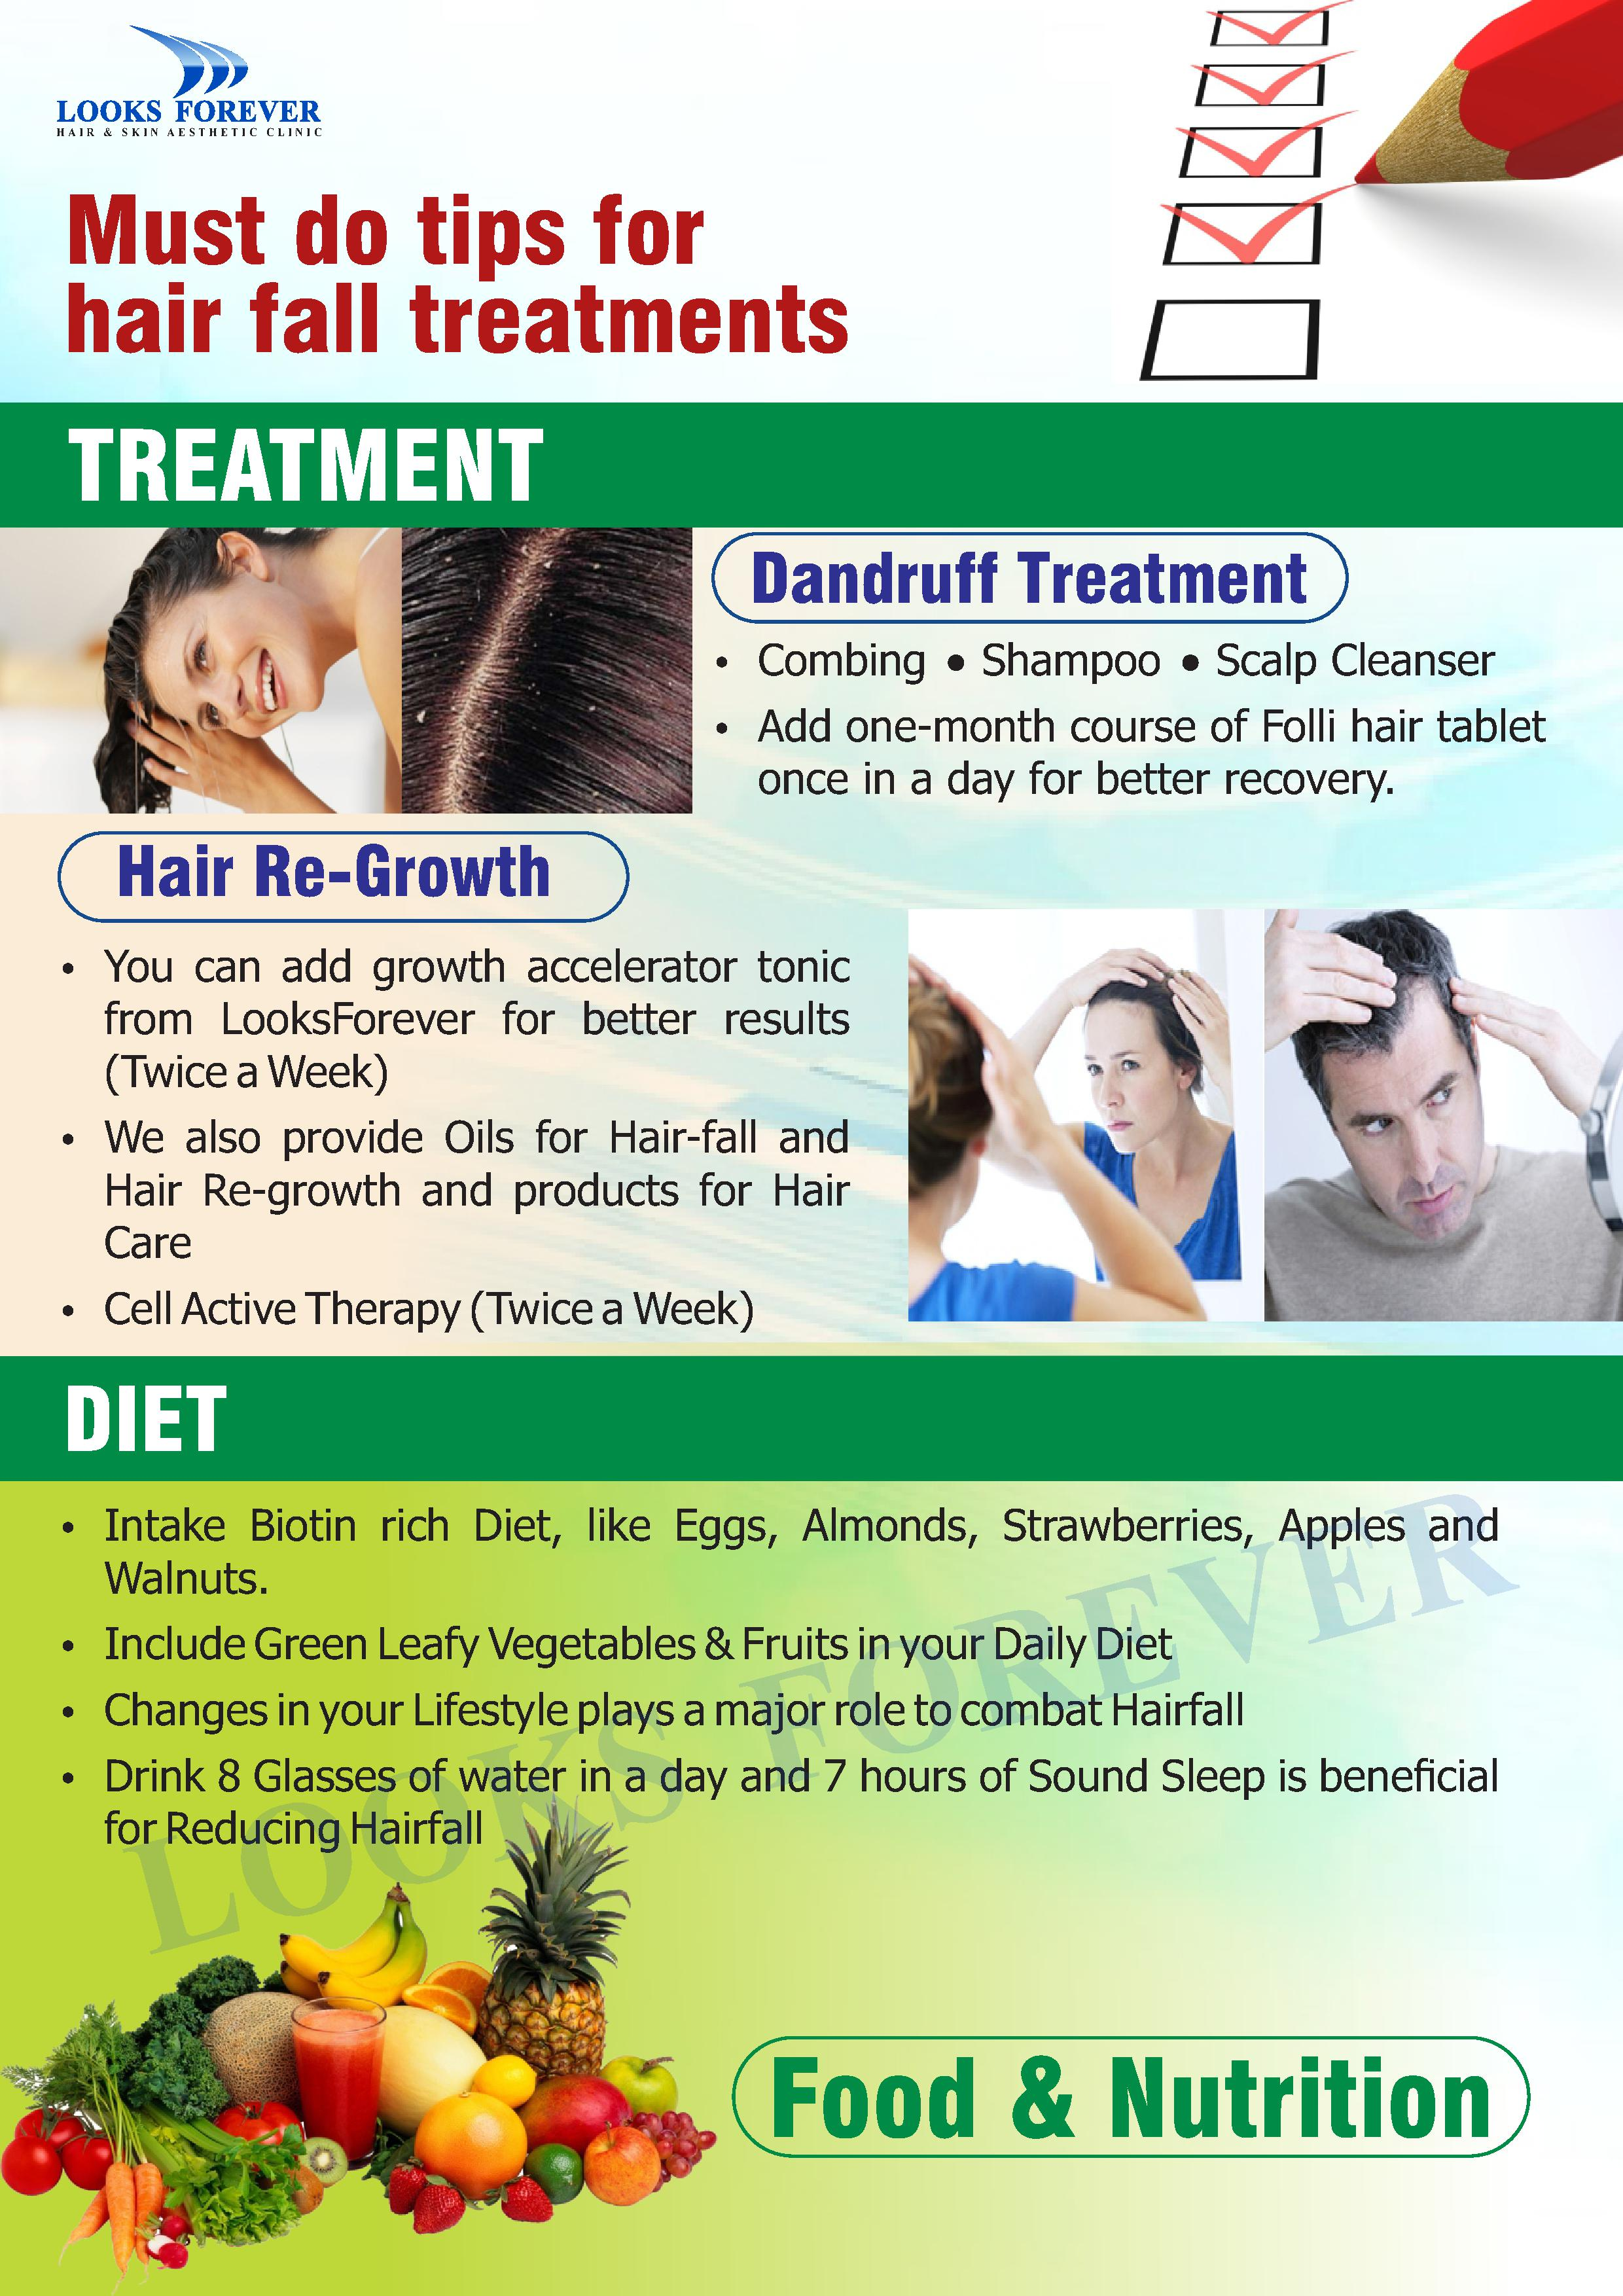 must do tips for hair treatment and care by looks forever hair and